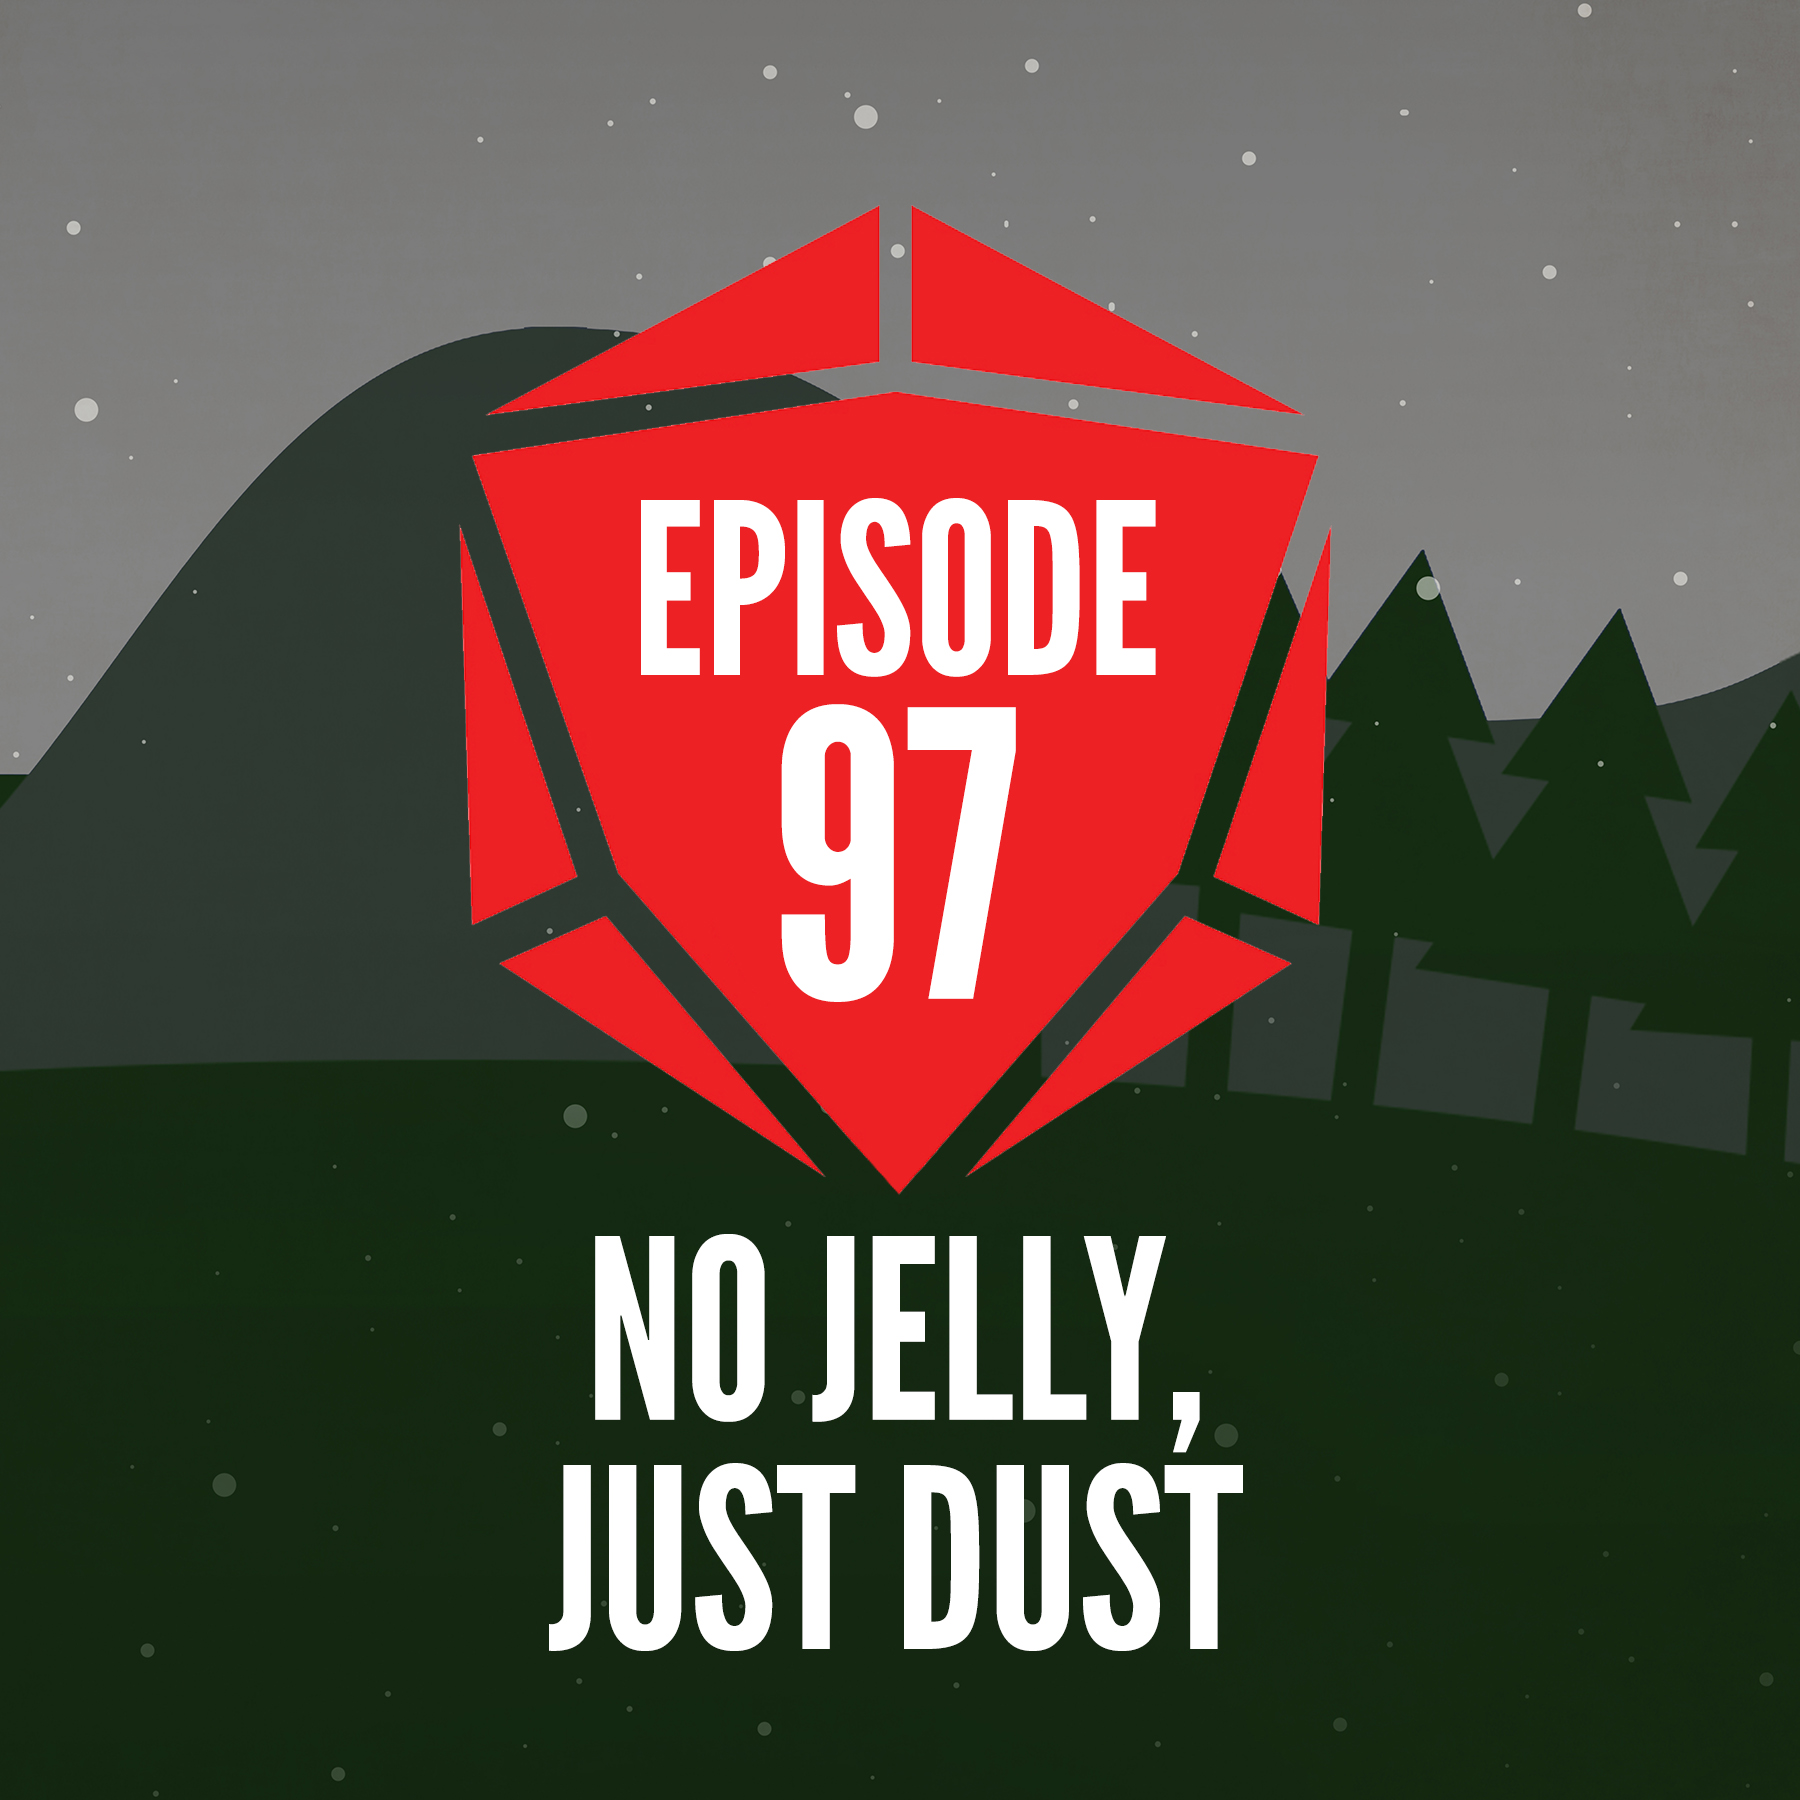 Episode 97: No Jelly, Just Dust